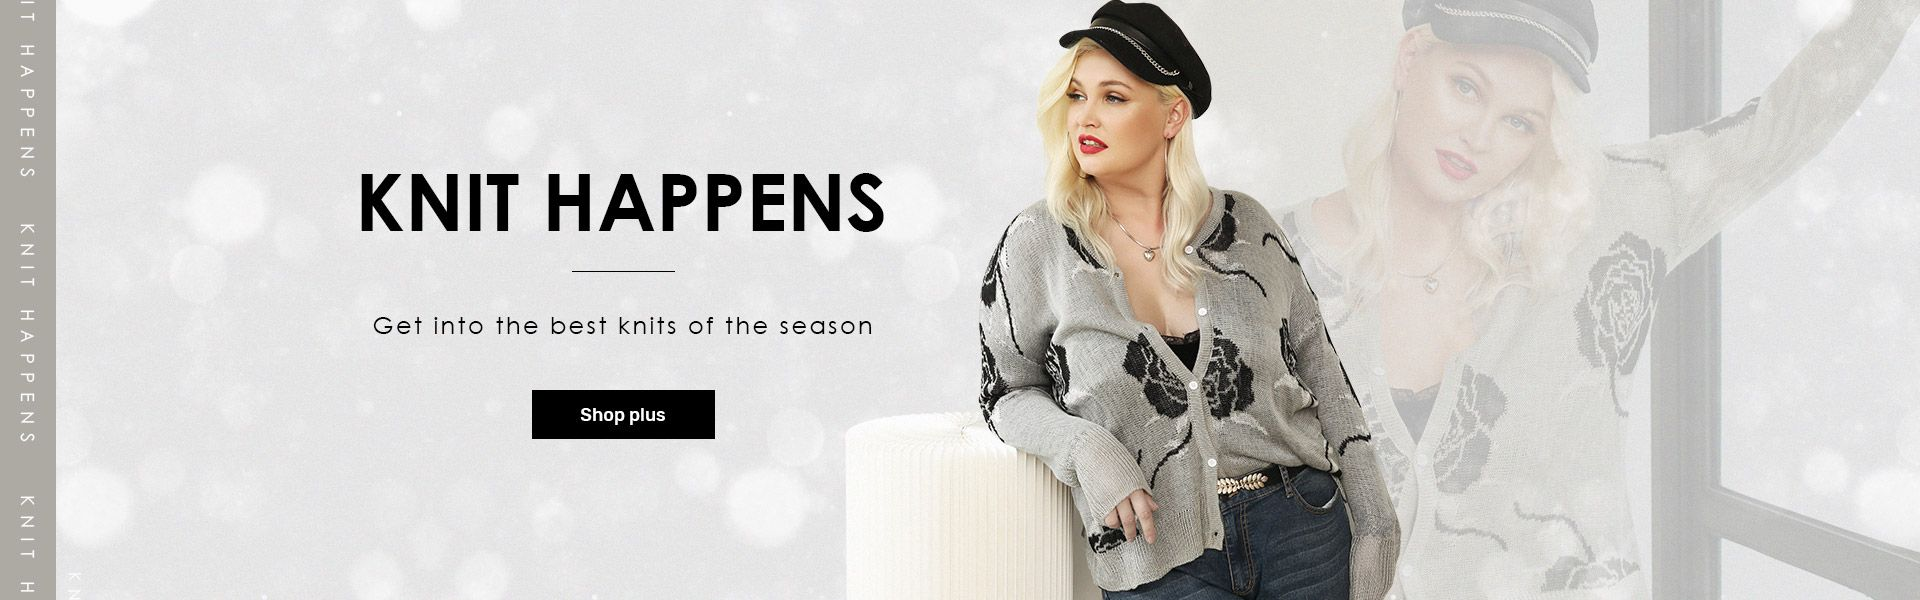 rosegal.com - Upto 53% discount on Women's Knit Collection